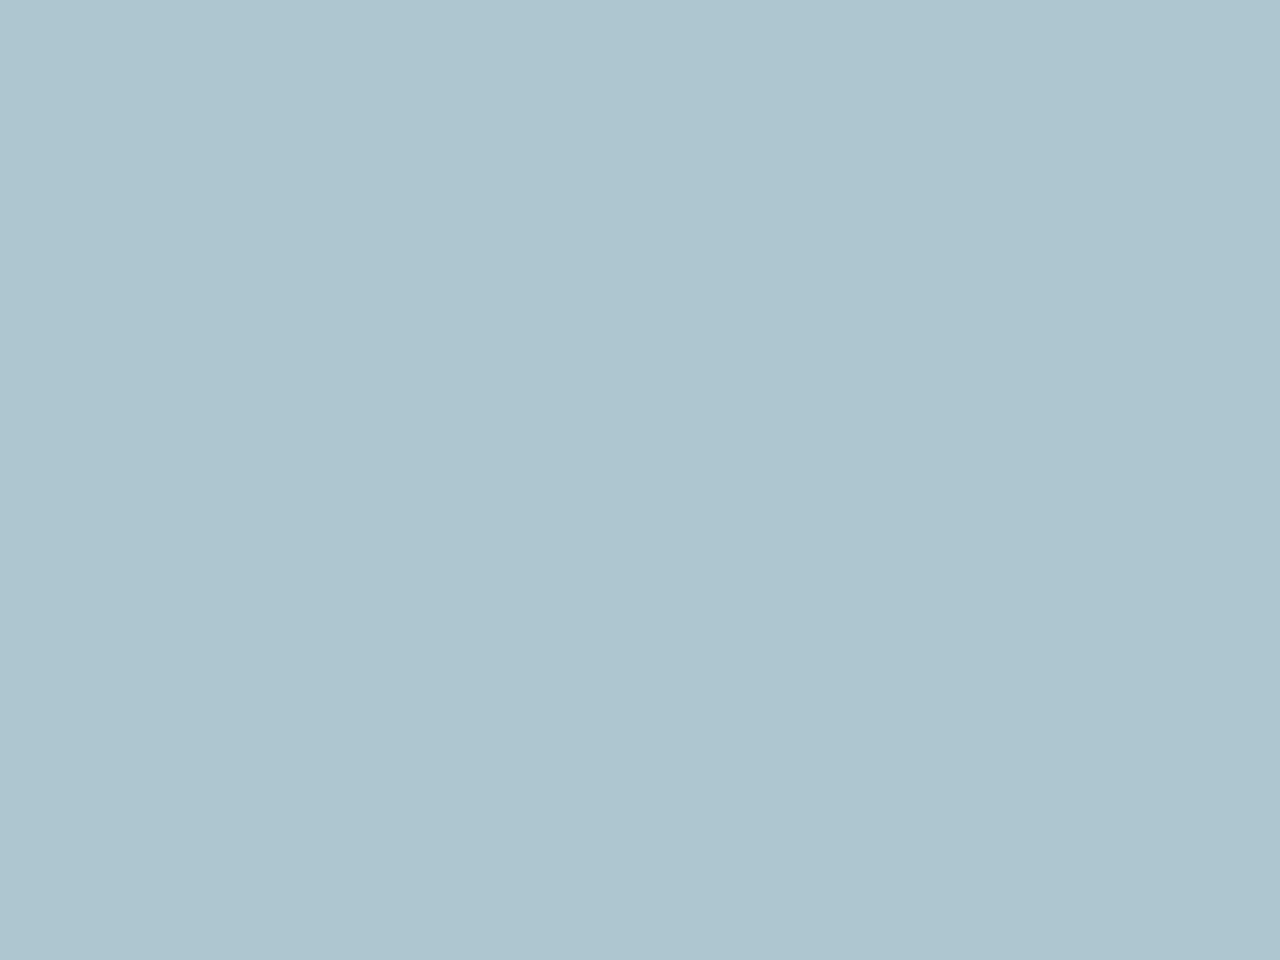 1280x960 Pastel Blue Solid Color Background